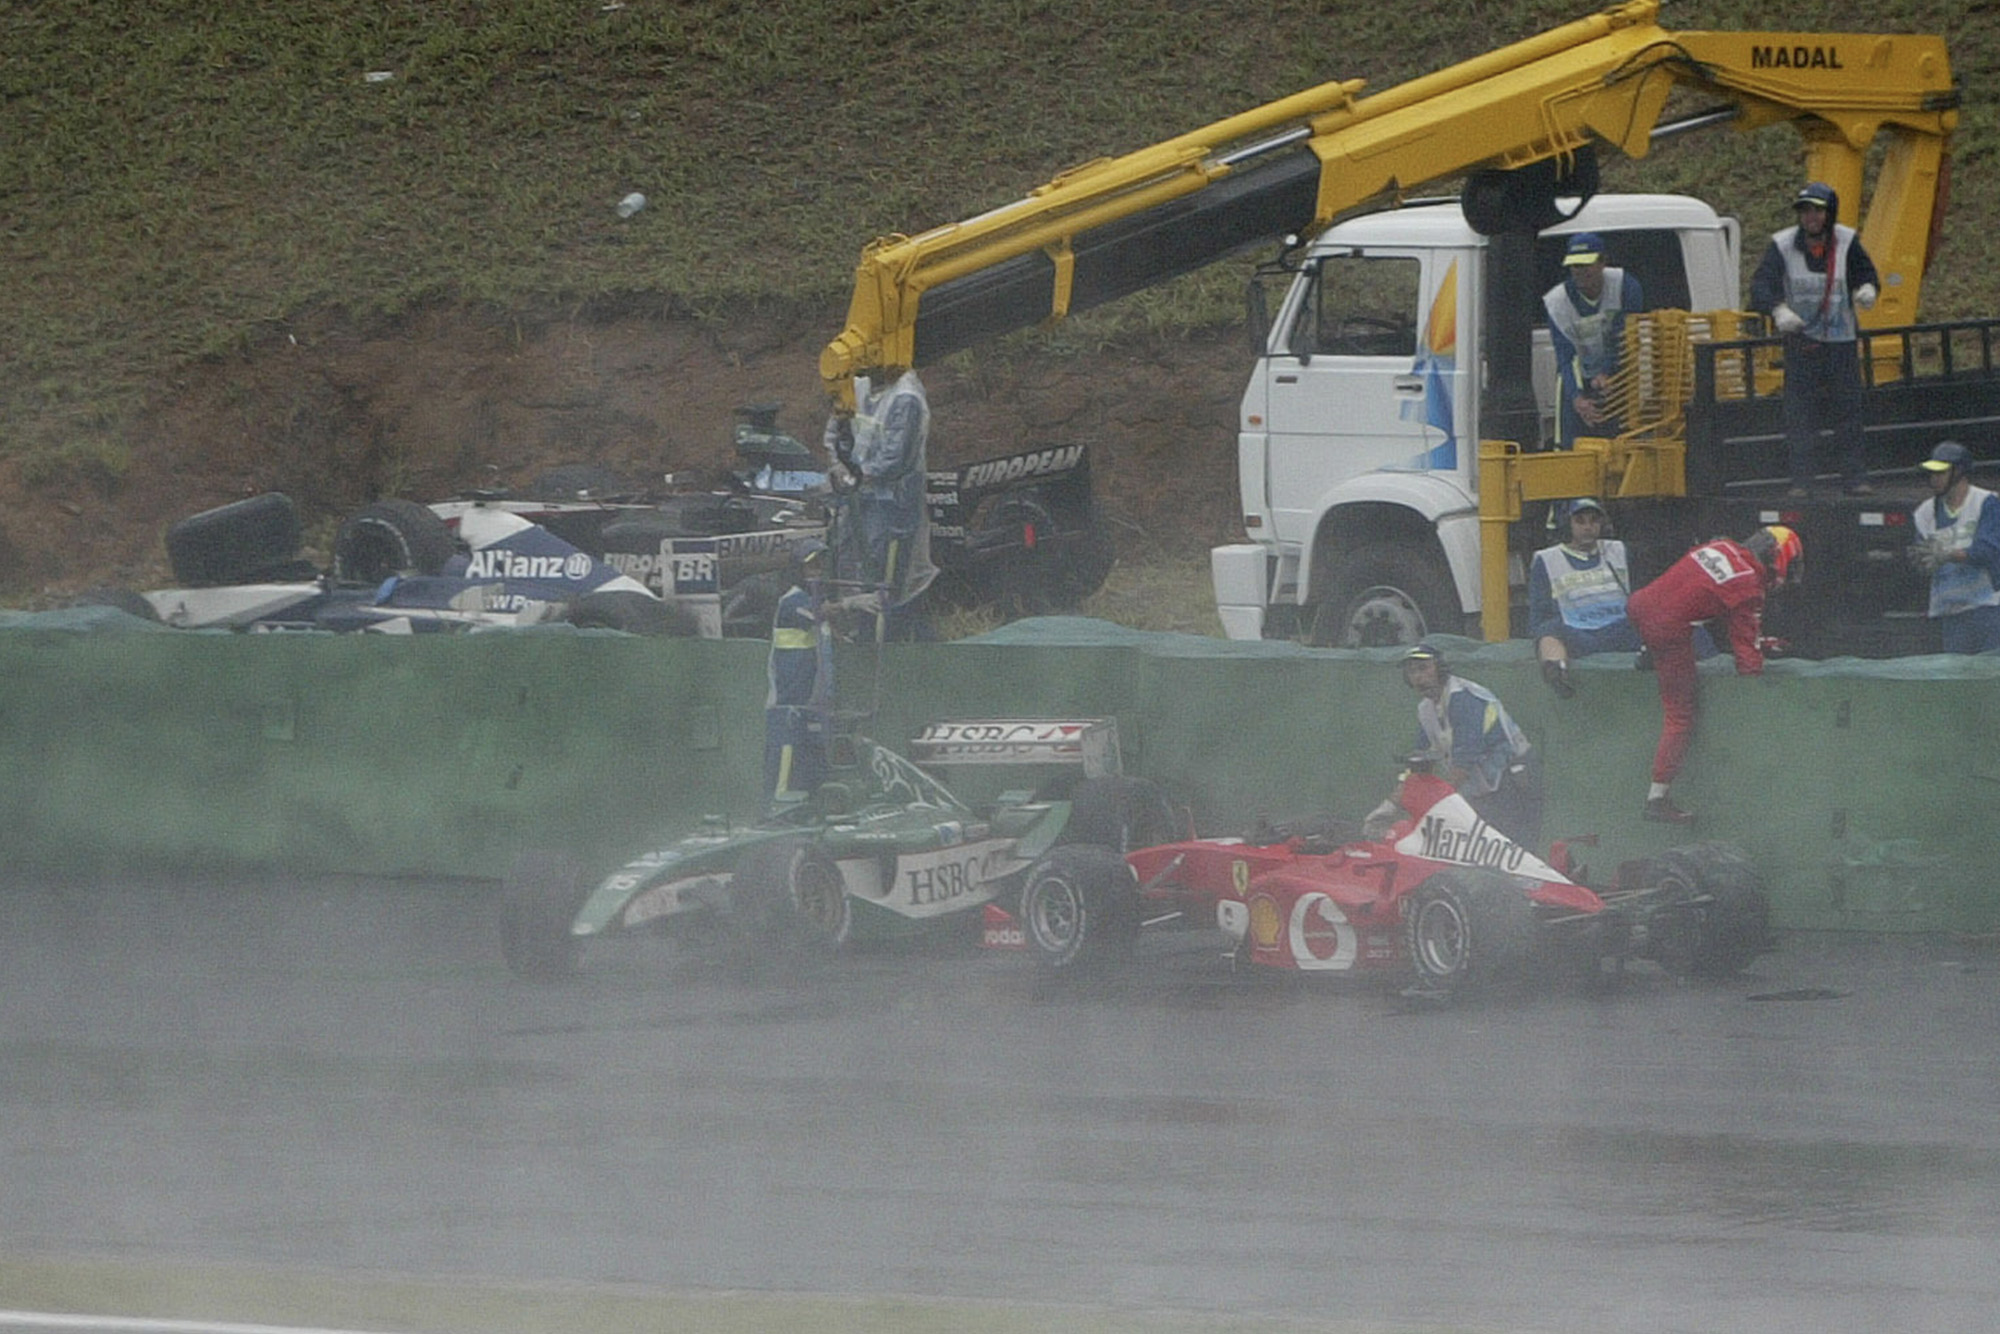 Michael Schumacher crashes out of the 2003 Brazilian Grand Prix